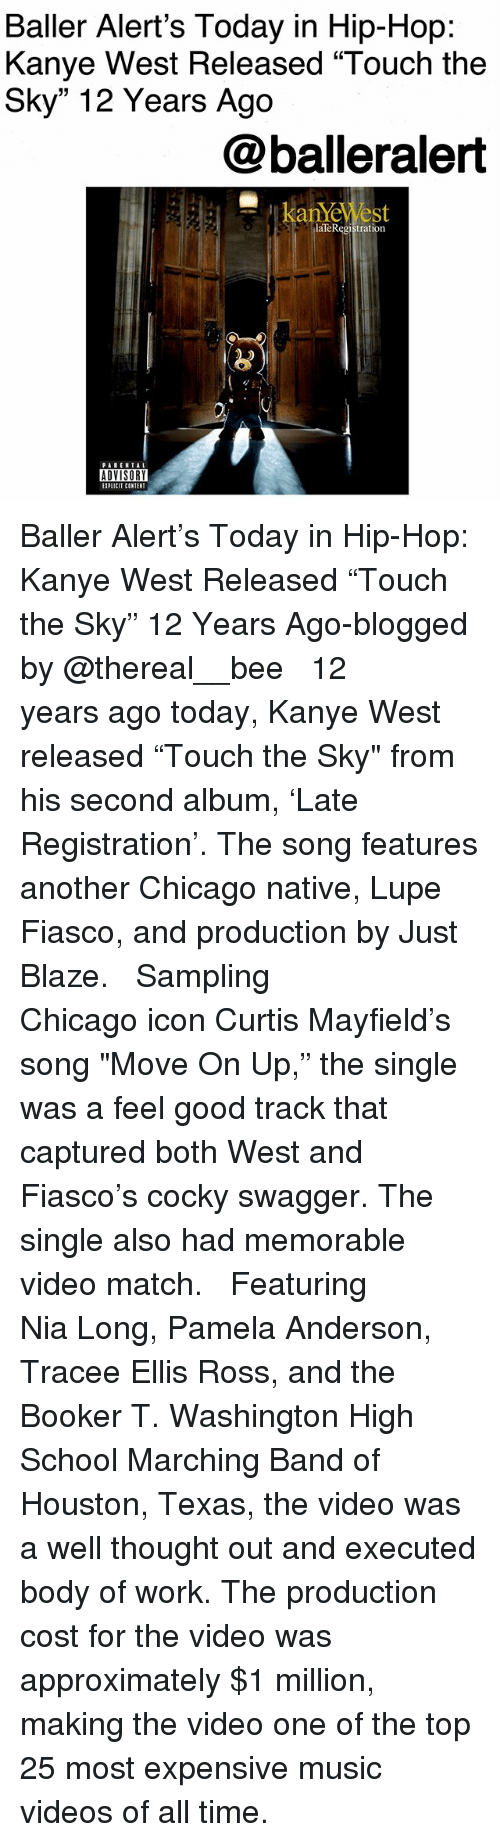 """Baller Alert, Chicago, and Kanye: Baller Alert's Today in Hip-Hop:  Kanye West Released """"Touch the  Sky"""" 12 Years Ago  @balleralert  laTeRegistration  ADVISORY  IPLICIT CONTENT Baller Alert's Today in Hip-Hop: Kanye West Released """"Touch the Sky"""" 12 Years Ago-blogged by @thereal__bee ⠀⠀⠀⠀⠀⠀⠀⠀⠀ ⠀⠀ 12 years ago today, Kanye West released """"Touch the Sky"""" from his second album, 'Late Registration'. The song features another Chicago native, Lupe Fiasco, and production by Just Blaze. ⠀⠀⠀⠀⠀⠀⠀⠀⠀ ⠀⠀ Sampling Chicago icon Curtis Mayfield's song """"Move On Up,"""" the single was a feel good track that captured both West and Fiasco's cocky swagger. The single also had memorable video match. ⠀⠀⠀⠀⠀⠀⠀⠀⠀ ⠀⠀ Featuring Nia Long, Pamela Anderson, Tracee Ellis Ross, and the Booker T. Washington High School Marching Band of Houston, Texas, the video was a well thought out and executed body of work. The production cost for the video was approximately $1 million, making the video one of the top 25 most expensive music videos of all time."""